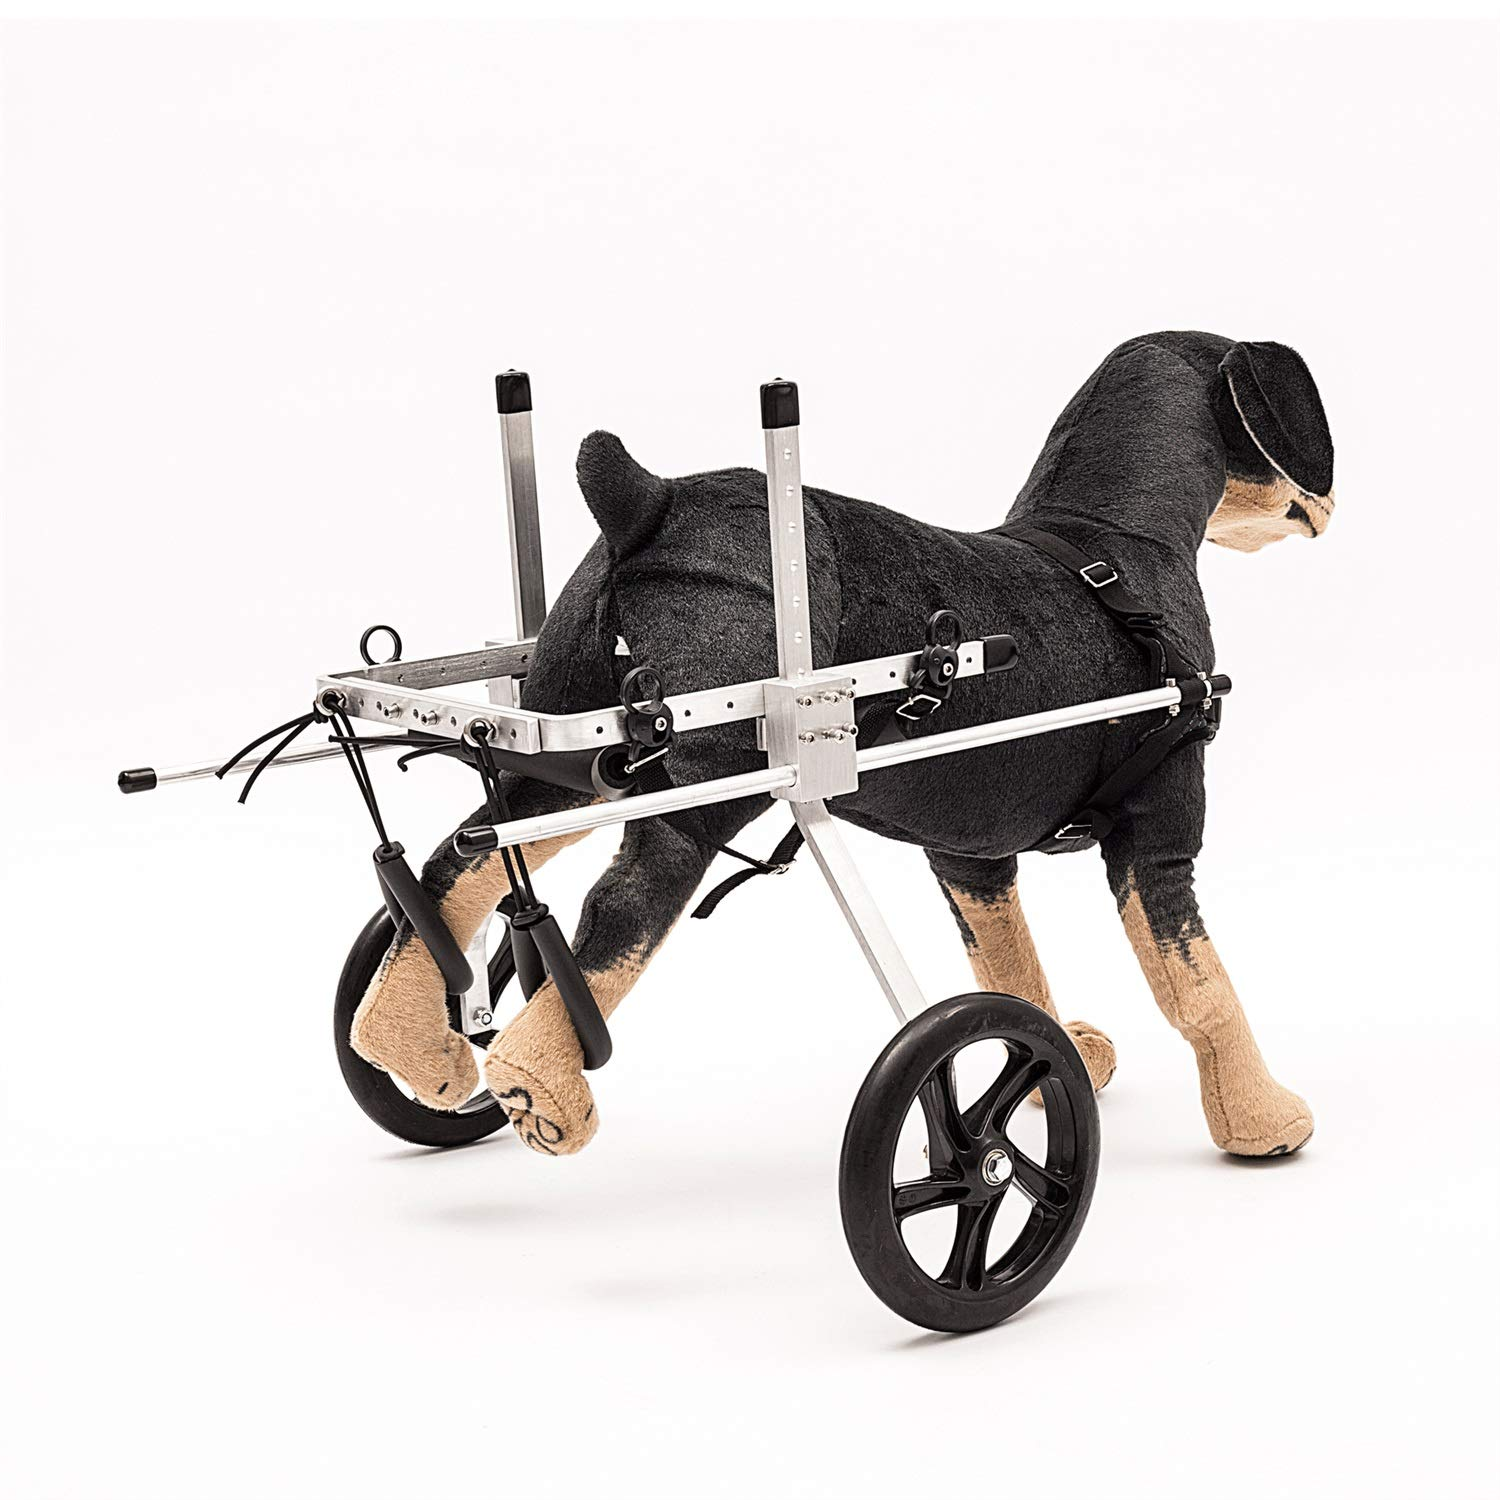 MXA Pet Scooters, Adjustable Stand Bracket pet Wheelchair, Disabled Dogs, Cats Super Lightweight Aluminum Optional, Dog Wheelchair hind hind Limb Paralysis Disability Assistance Dog pet Scooter. by MXA